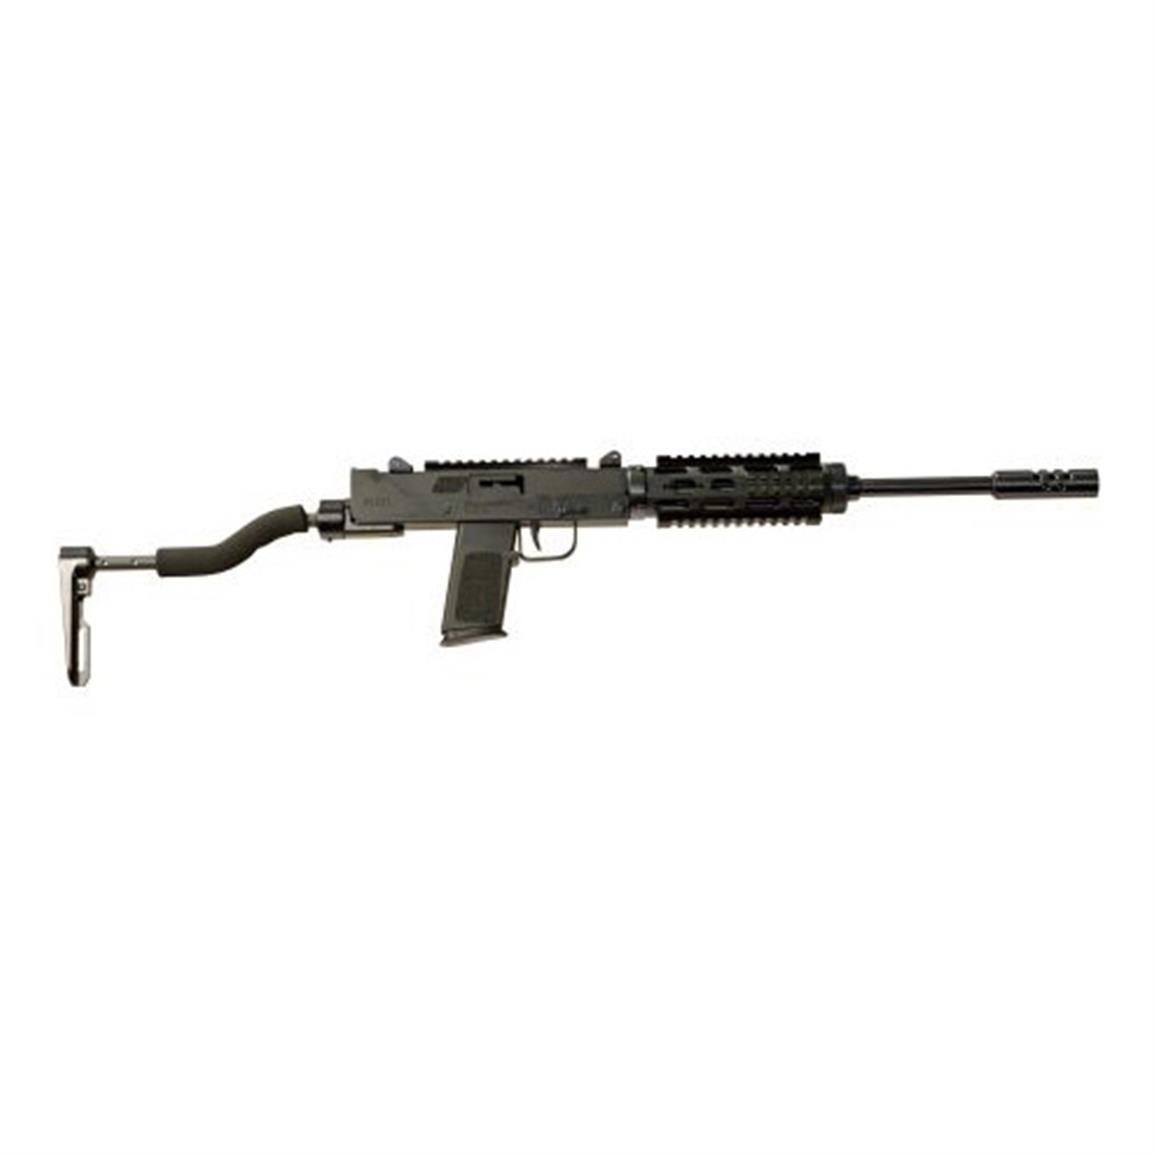 Masterpiece Arms Defender, Semi-automatic, 5.7x28mm, Centerfire, 5700SST, 661799649834